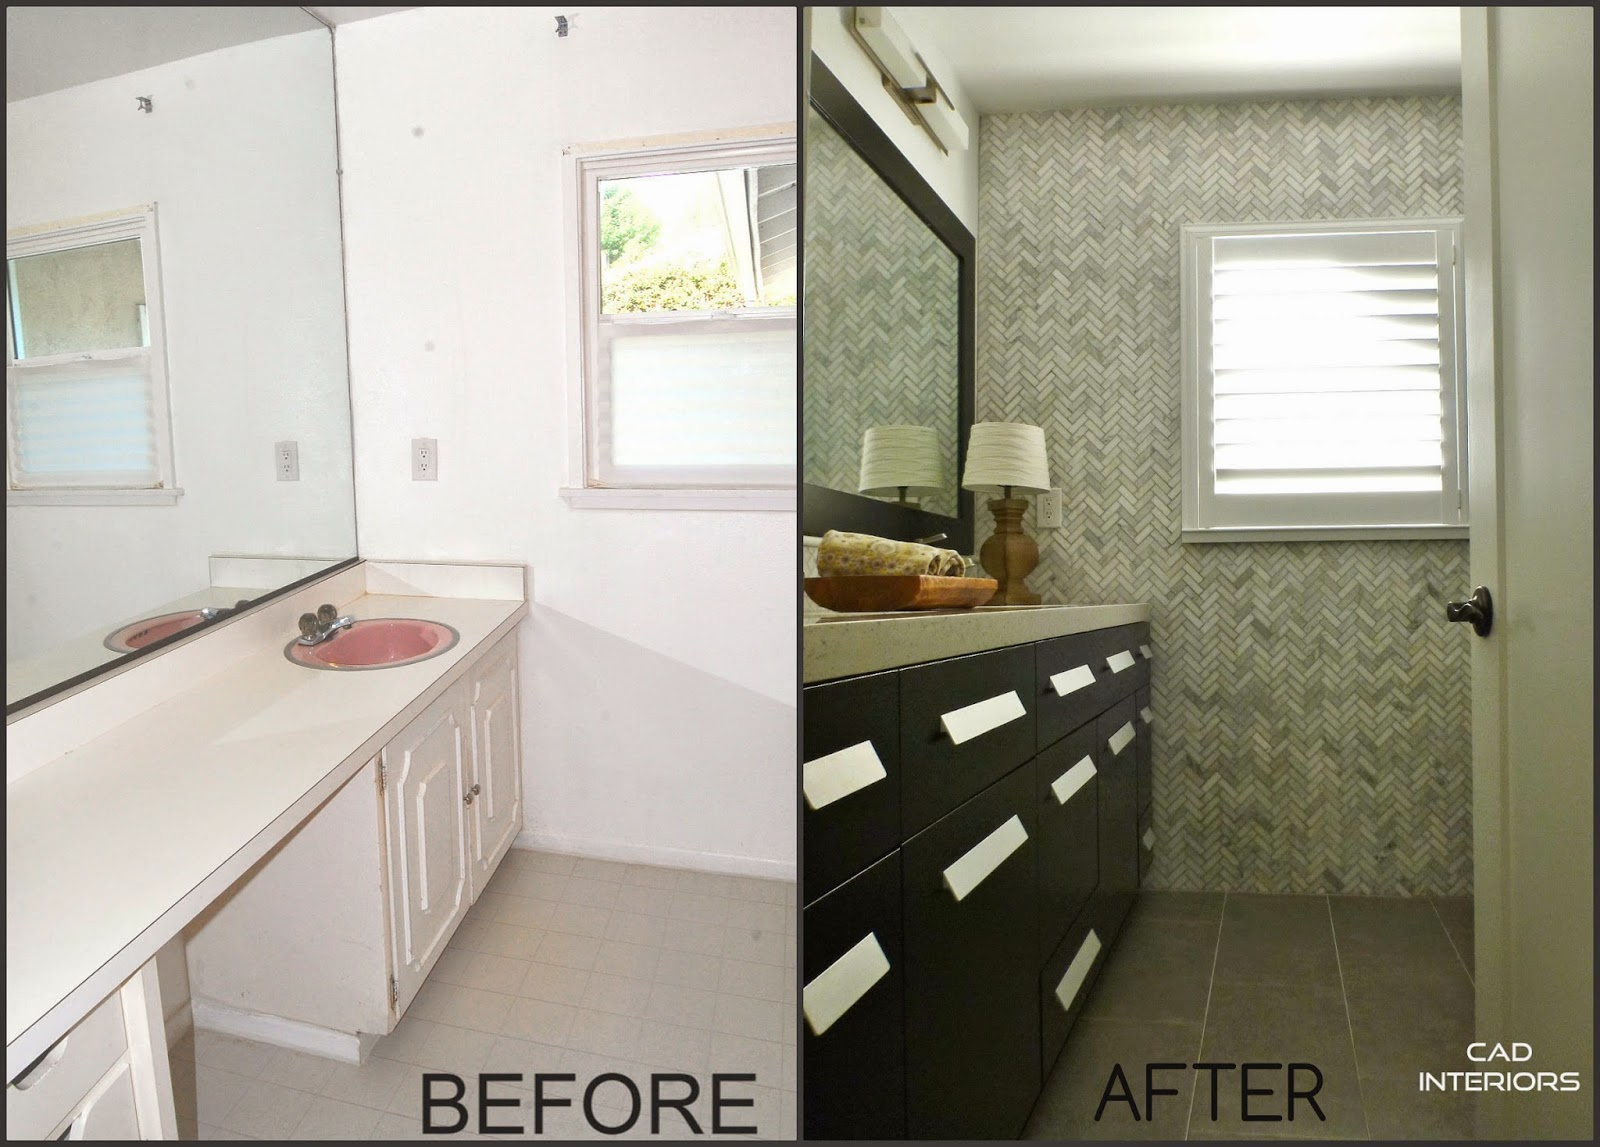 CAD INTERIORS Affordable Stylish Interiors - Before and after bathroom renovations